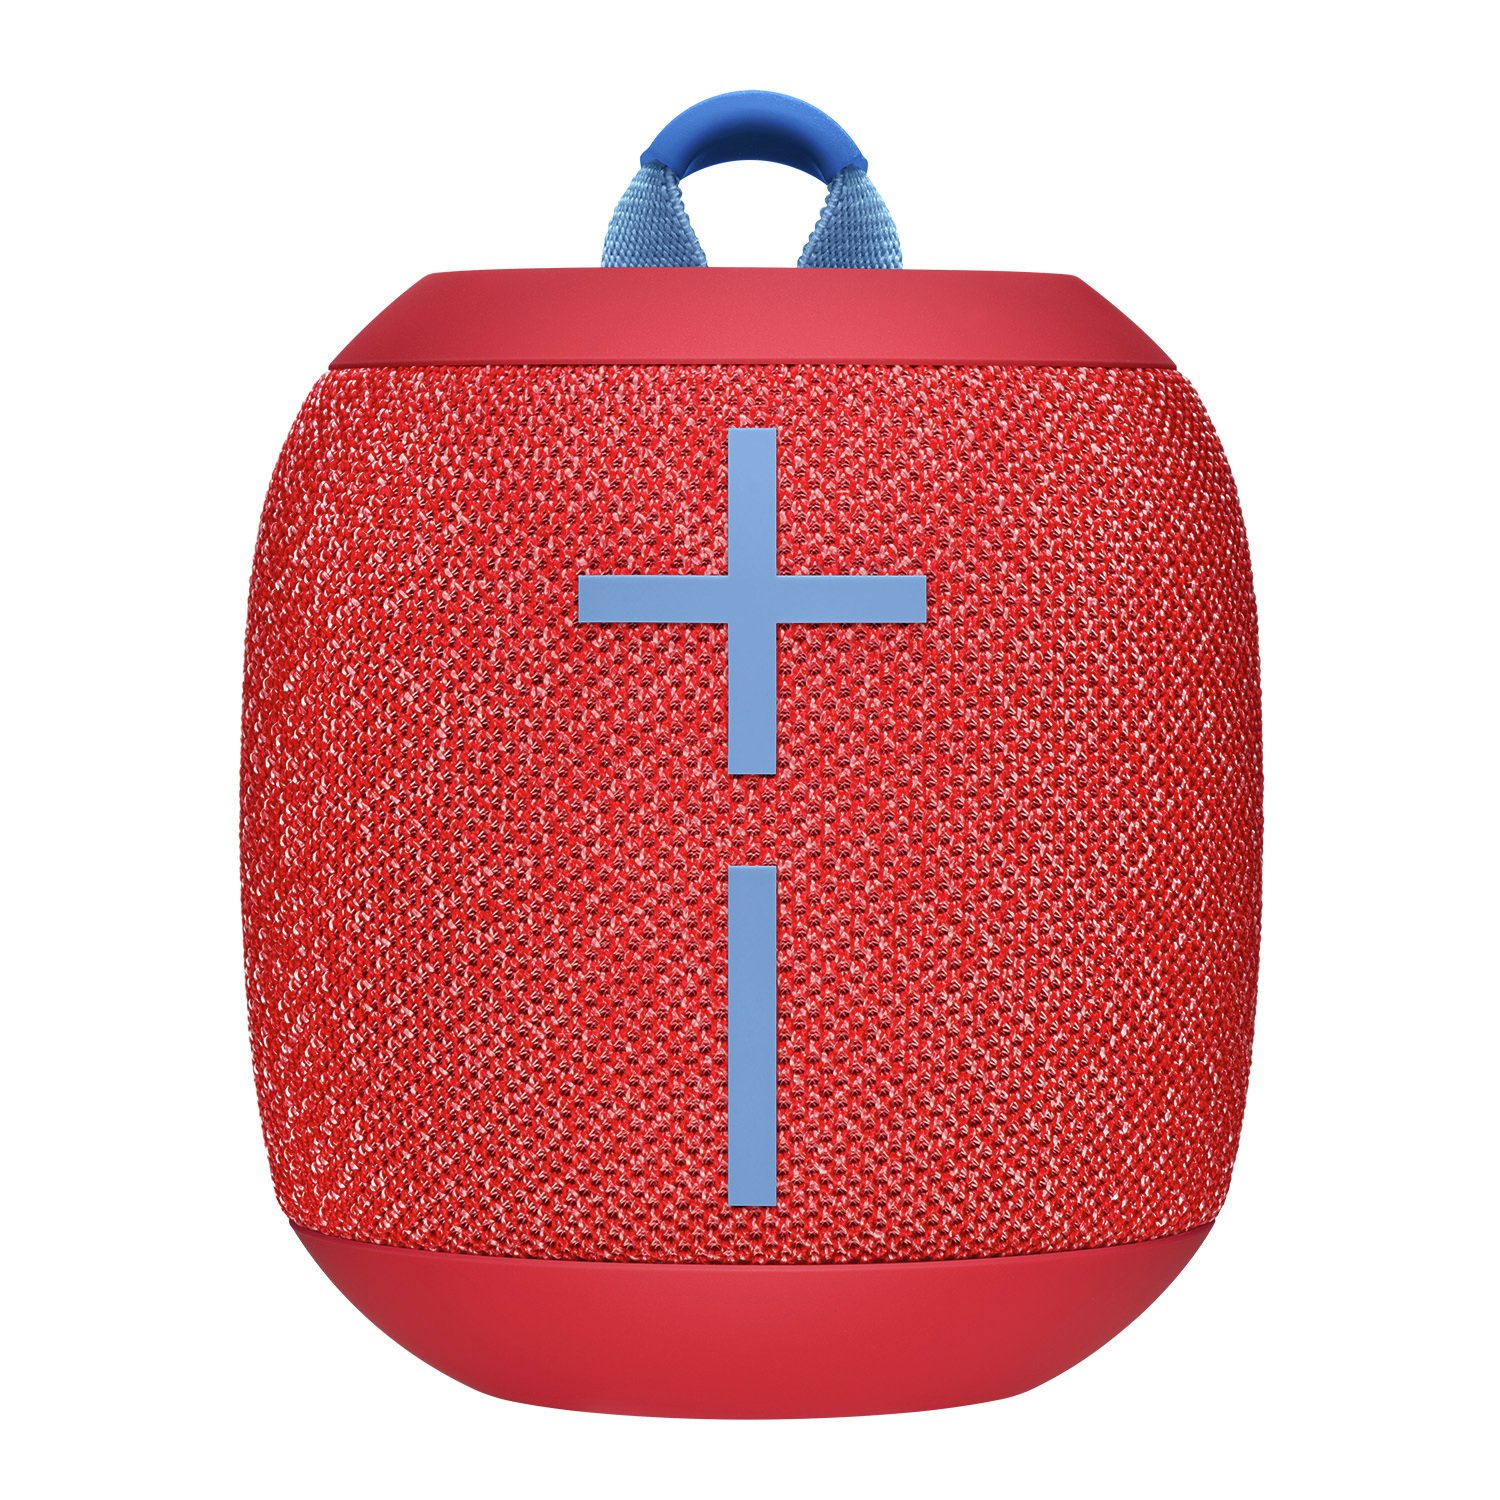 Ultimate Ears WONDERBOOM 2 Bluetooth Wireless Speaker - Red